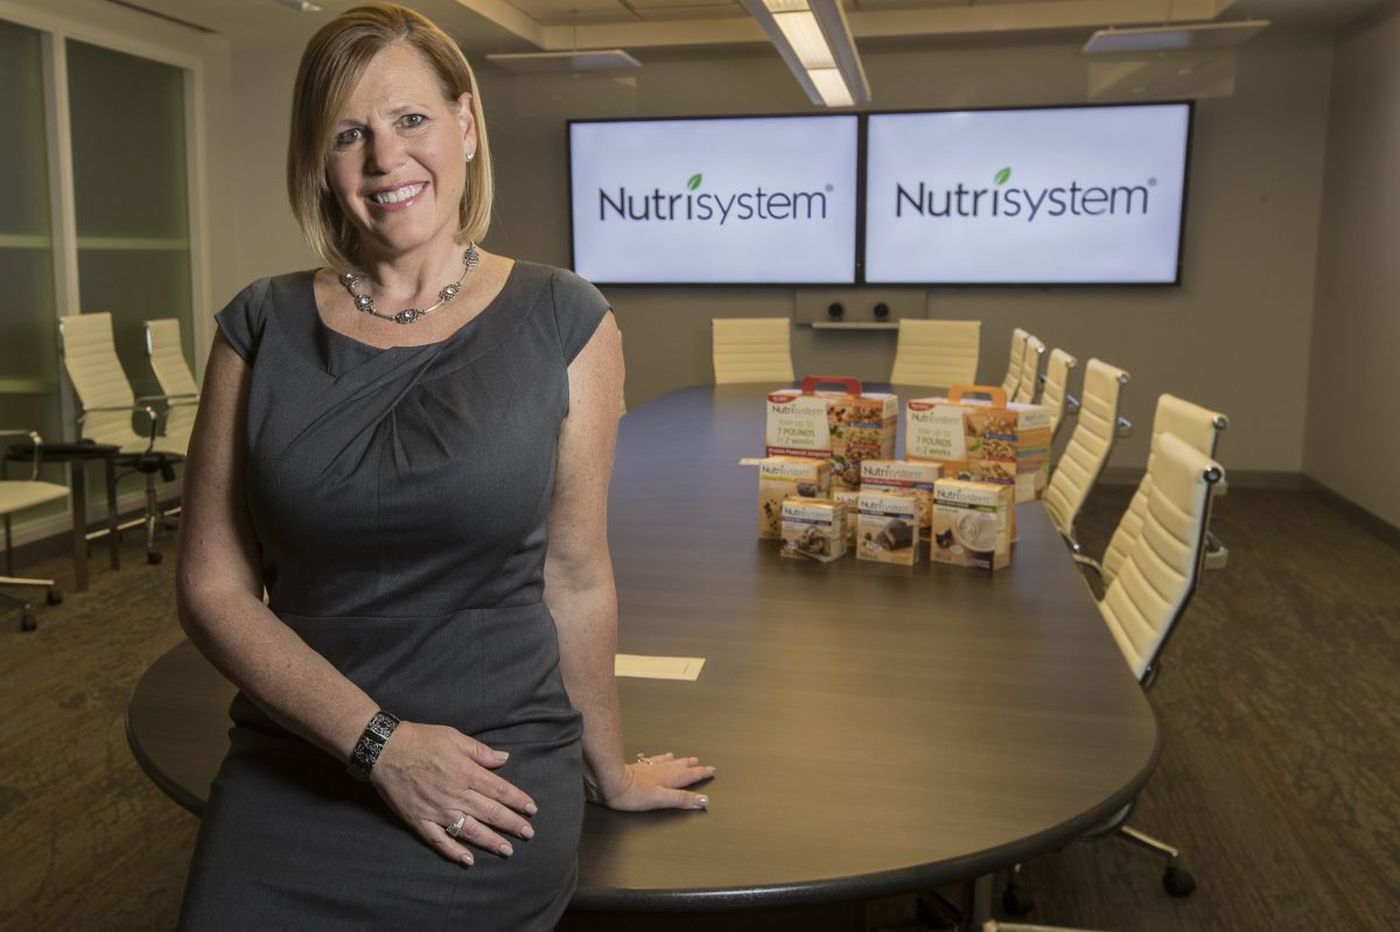 Nutrisystem is sold for $1.4 billion to Tivity of Nashville